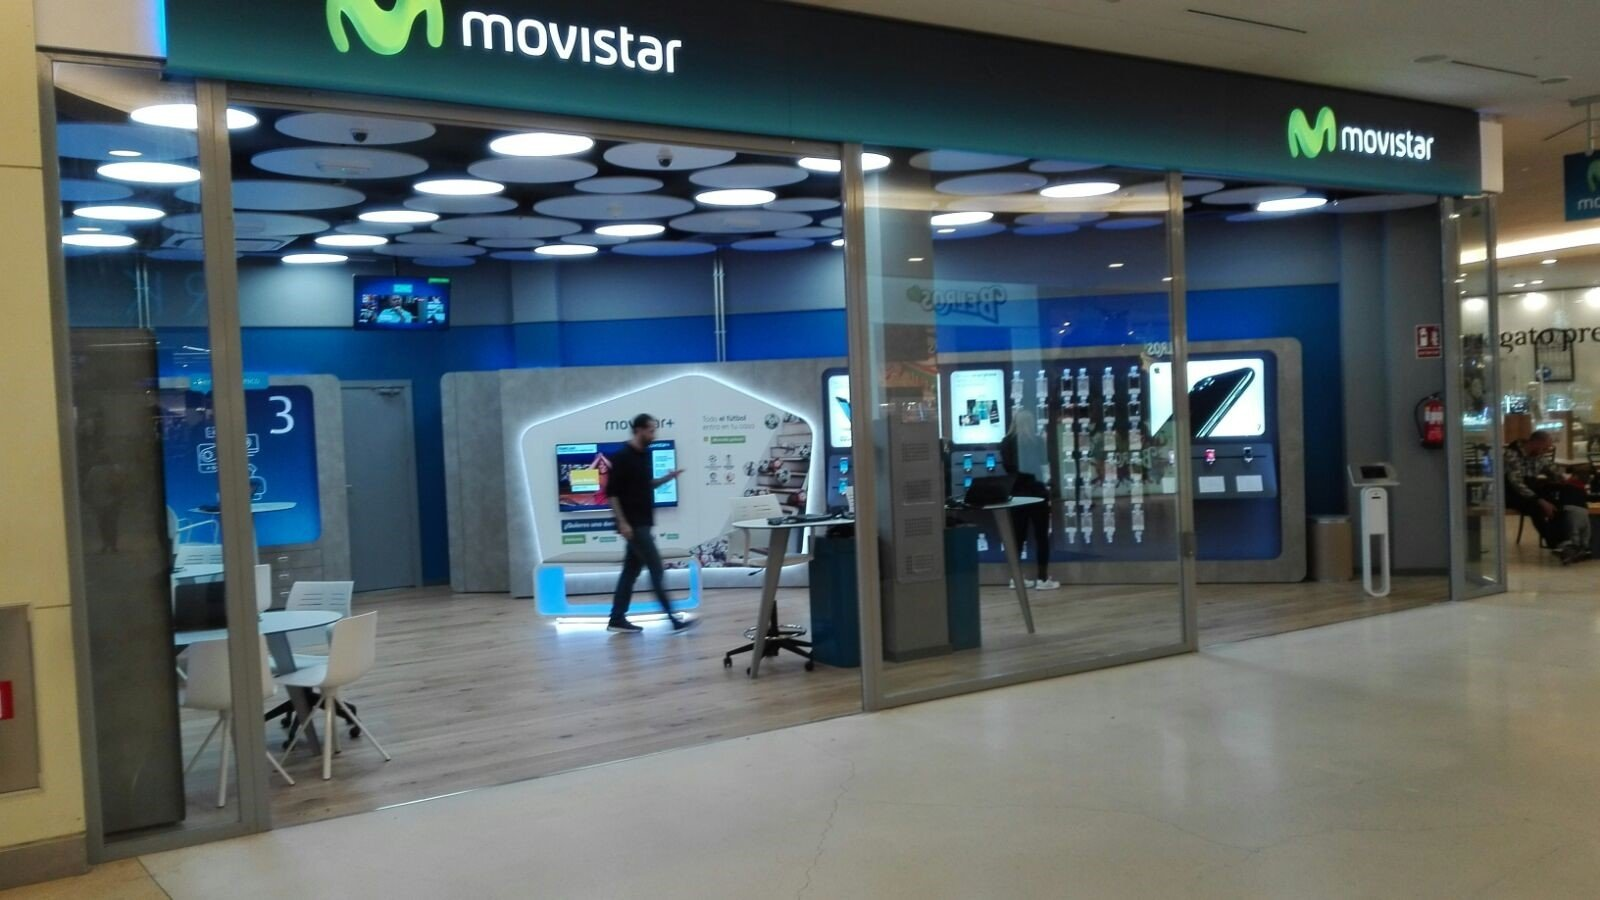 Reformas integrales de tiendas movistar en madrid y valencia for Oficinas movistar